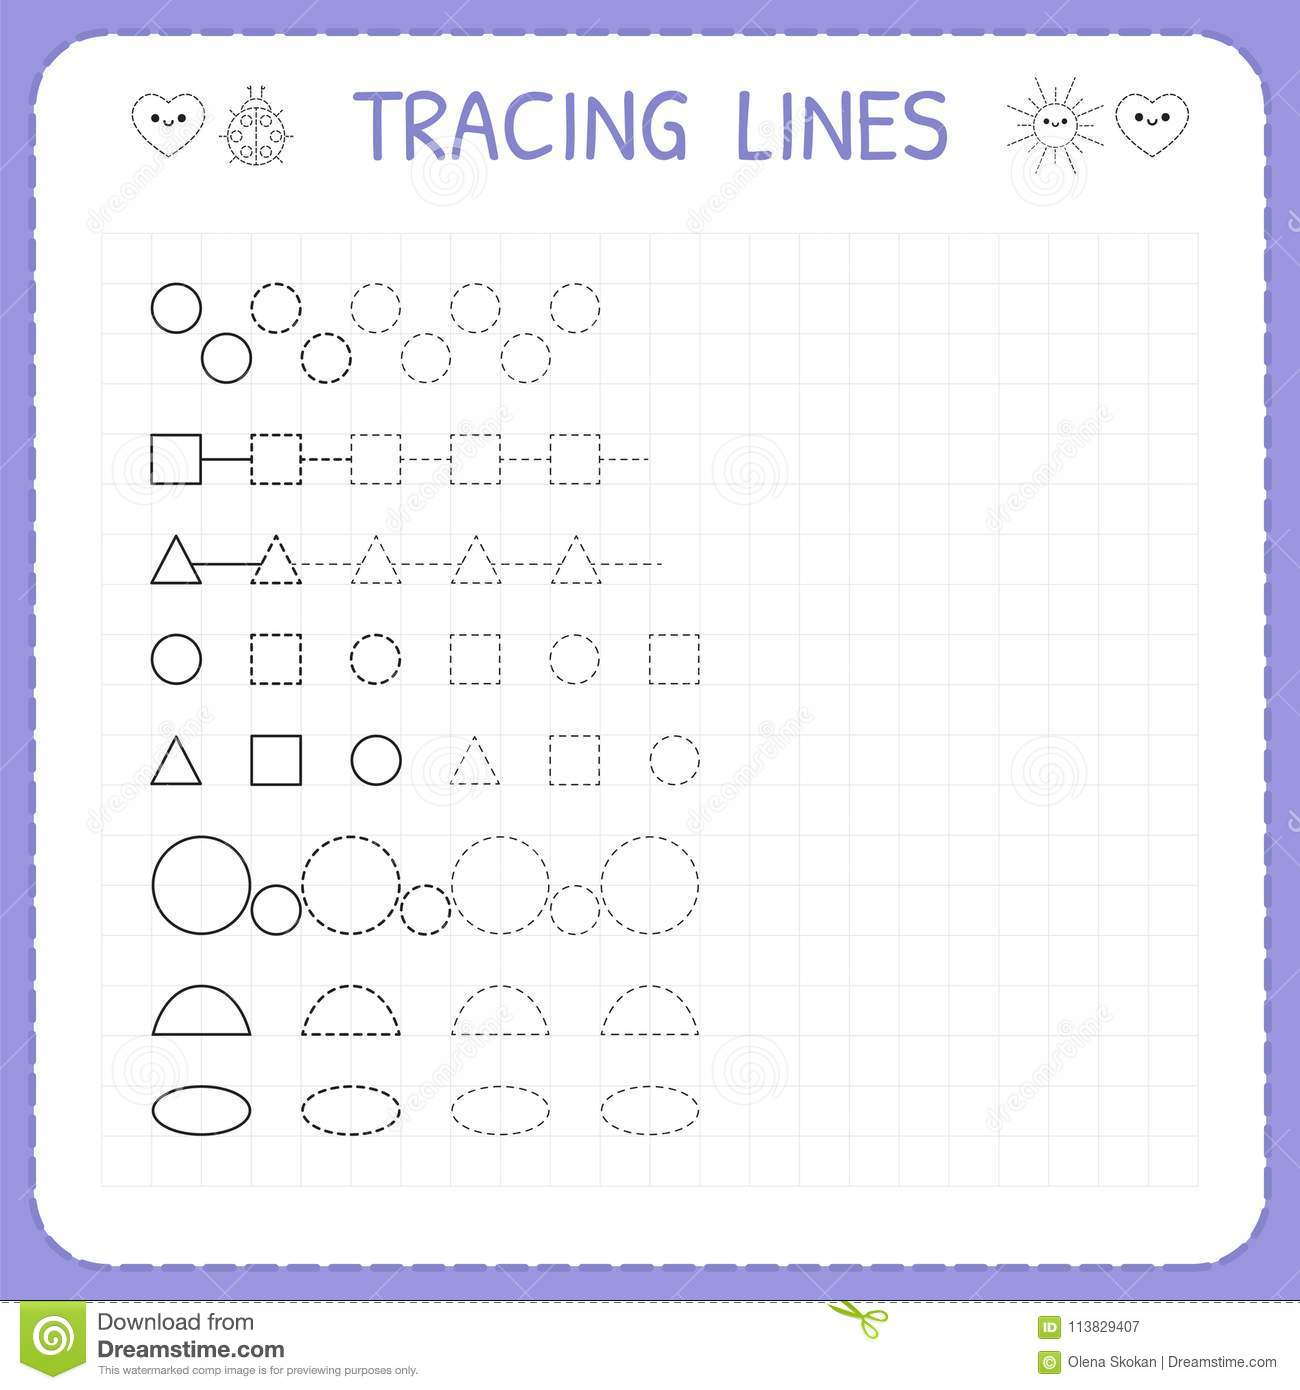 Tracing Lines Worksheet For Kids Working Pages For Children Trace The Pattern Basic Writing